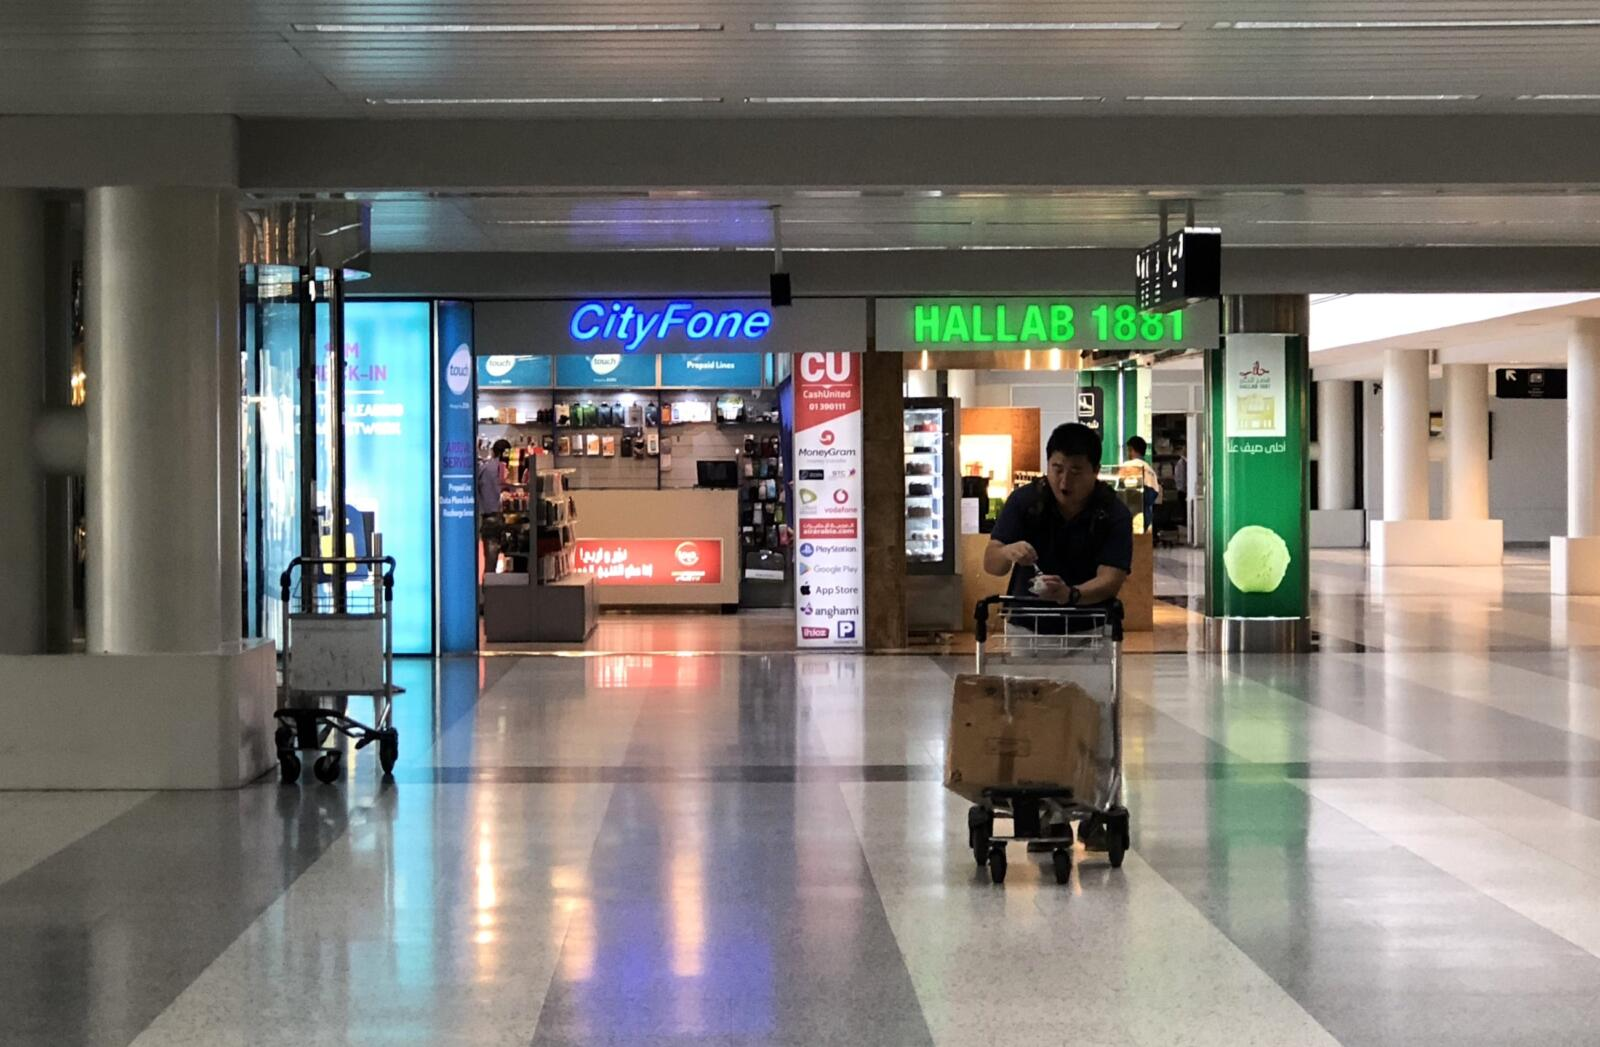 The CityFone shop in the Arrivals Halls at Beirut airport